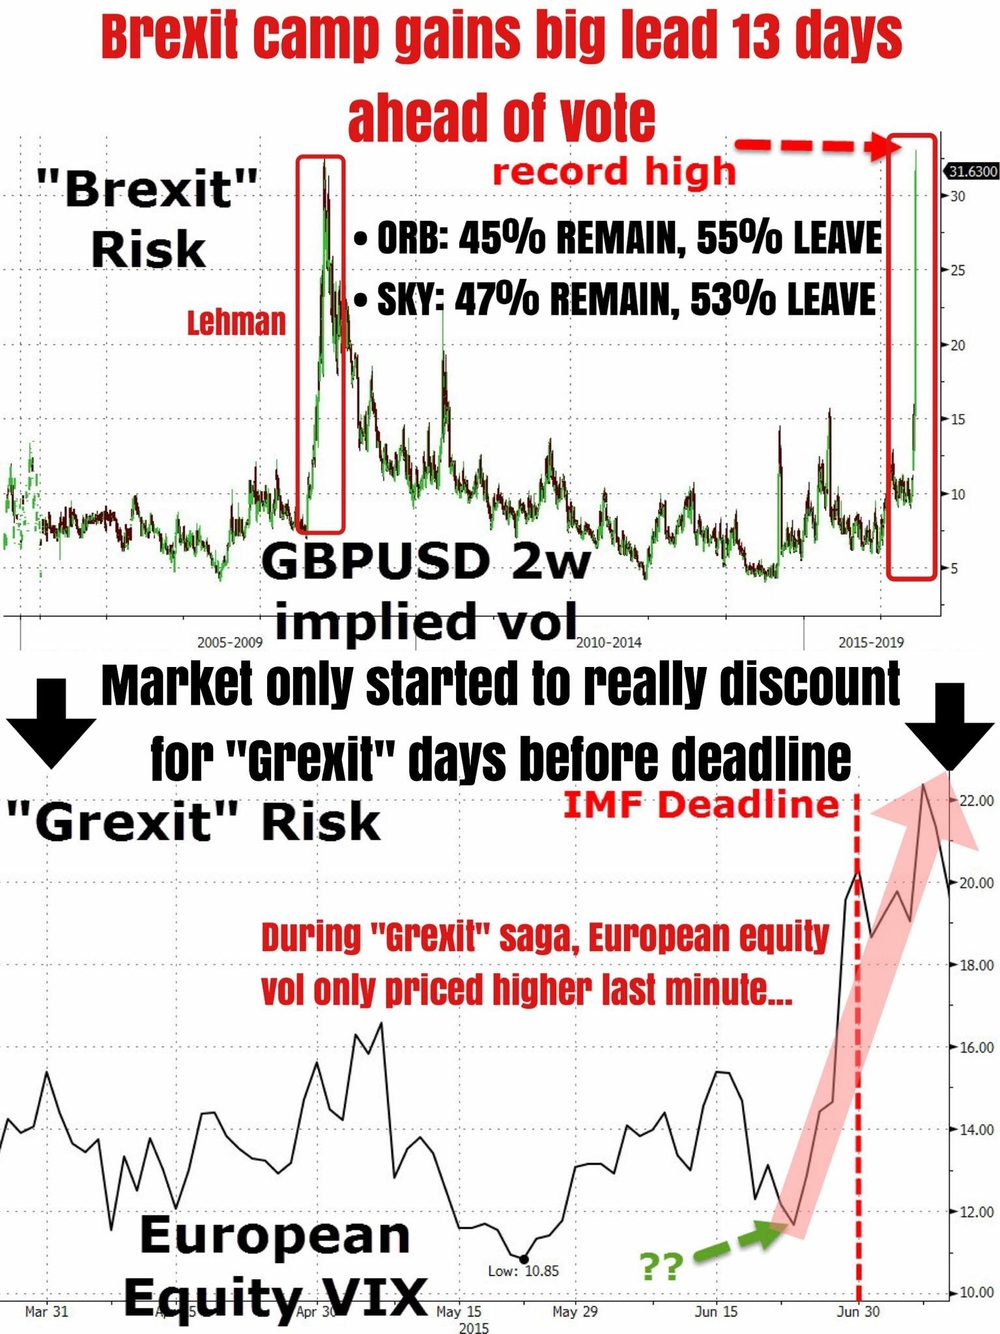 """With just 13 days left before the UK votes in its future with the EU, GBP implied volatility (risk premium) has exploded to an all-time high, eclipsing that seen during the 2008/9 Global Financial Crisis and Great Recession. It seems that with every subsequent opinion poll being released closer and closer to D-date, the ""Leave"" camp (Brexit) is gaining a widening lead over the ""Stay"" camp (Bremain).    FX traders at least have begun to wake up to the short term uncertainties to what Brexit might entail. A short-term measure of expected price swings for the pound climbed for a third week as traders sought protection via GBP futures options on both sides. While we prefer not to speculate (gamble) on this game of Brexit or Bremain, we have a queer feeling that fear has been overpriced, and misplaced.    Why so? Well, history says so. Harken back to the good old nostalgic days of ""Grexit"", a term coined for the possibility of Greece exiting the Euro Zone, where European equity markets had all the time in the world to discount for a heightened risk of a ""Grexit"" event but waited till the last minute before risk premium became heavily bid; a few days before a crucial IMF loan repayment deadline in fact.     ***    Credit Suisse covered this story and explain why the current Brexit situation might be a tad reminiscent to that saga:    If this is anything like the ""Grexit"" catalyst last year, equity markets may wait until the last minute to price in the appropriate risk premium.    As you can see from the EFA vol chart, even though ""Grexit"" was a well-known and well-anticipated catalyst last year, EFA 1M implied vol was still trading as low as 11.7% the week before Greece's June 30th IMF repayment deadline.    EFA 1M implied vol ended up surging 8 vol pts in the final week before the deadline and another 3 vol pts after a surprise referendum was called over the July 4th weekend last year.    And it wasn't just EFA. VIX also didn't start reacting to ""Grexit"" risk until the final week when it jumped from 12 to 19.    Will the same thing happen this time? If so, I think it makes sense to hedge now when you can (and when it's cheap!), not when you have to in the final days before the deadline when implied vols will have already climbed higher.    ***     It seems to us the hedges have already been put in place and it's a matter of how much and how far traders are willing to push premiums before they blow off post the referendum...""    Business Of Finance on Facebook, 11 June 2016"